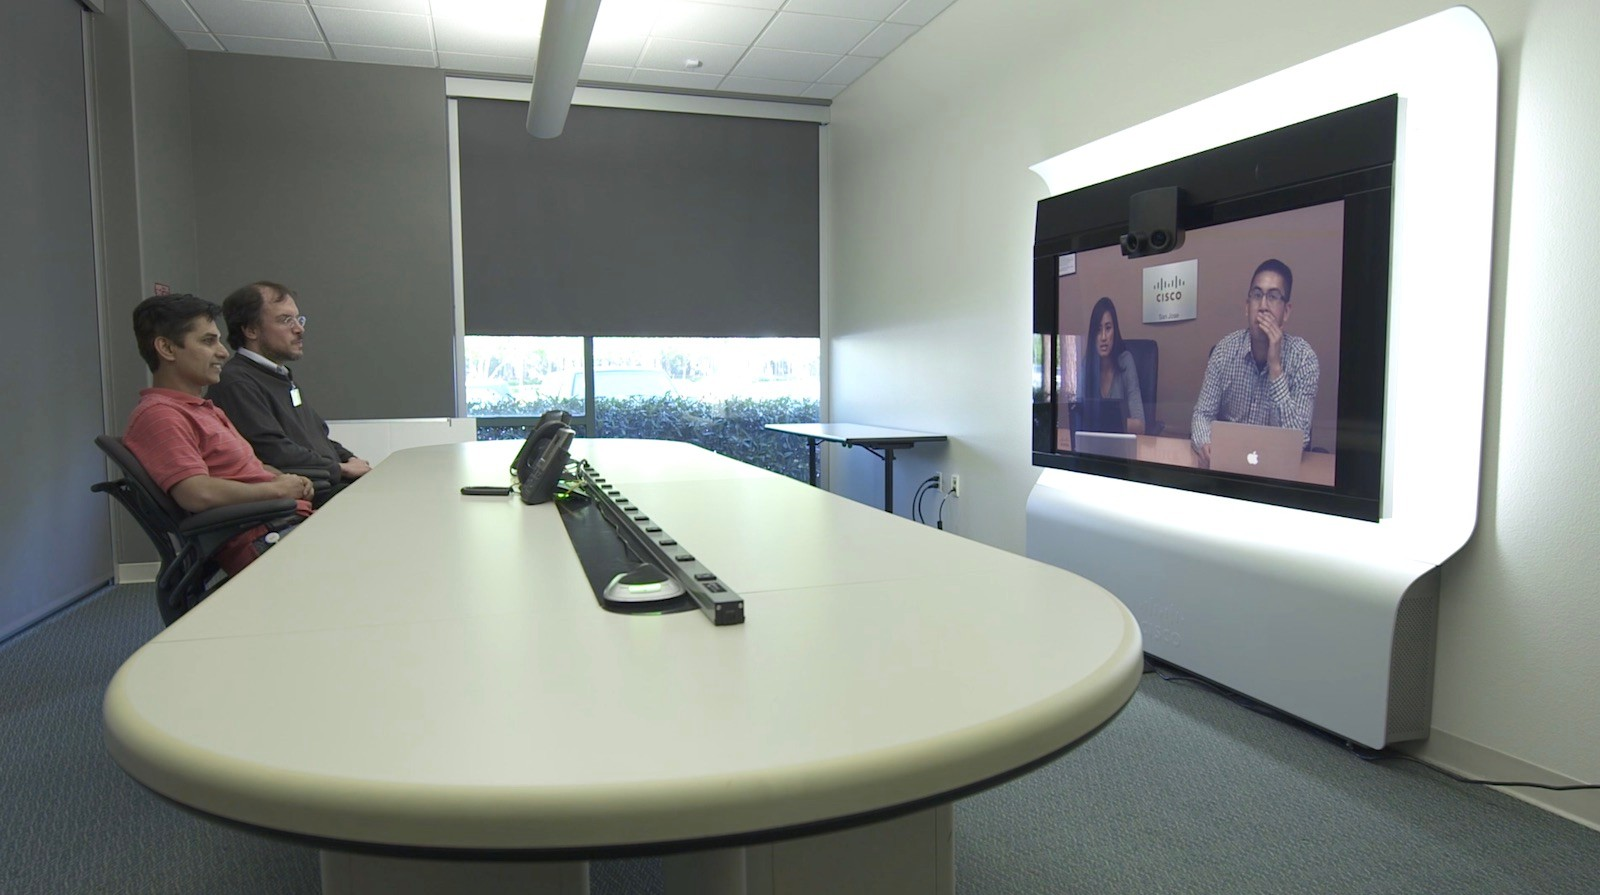 Employees at Cisco's campus use Cisco teleconferencing technology for a meeting.